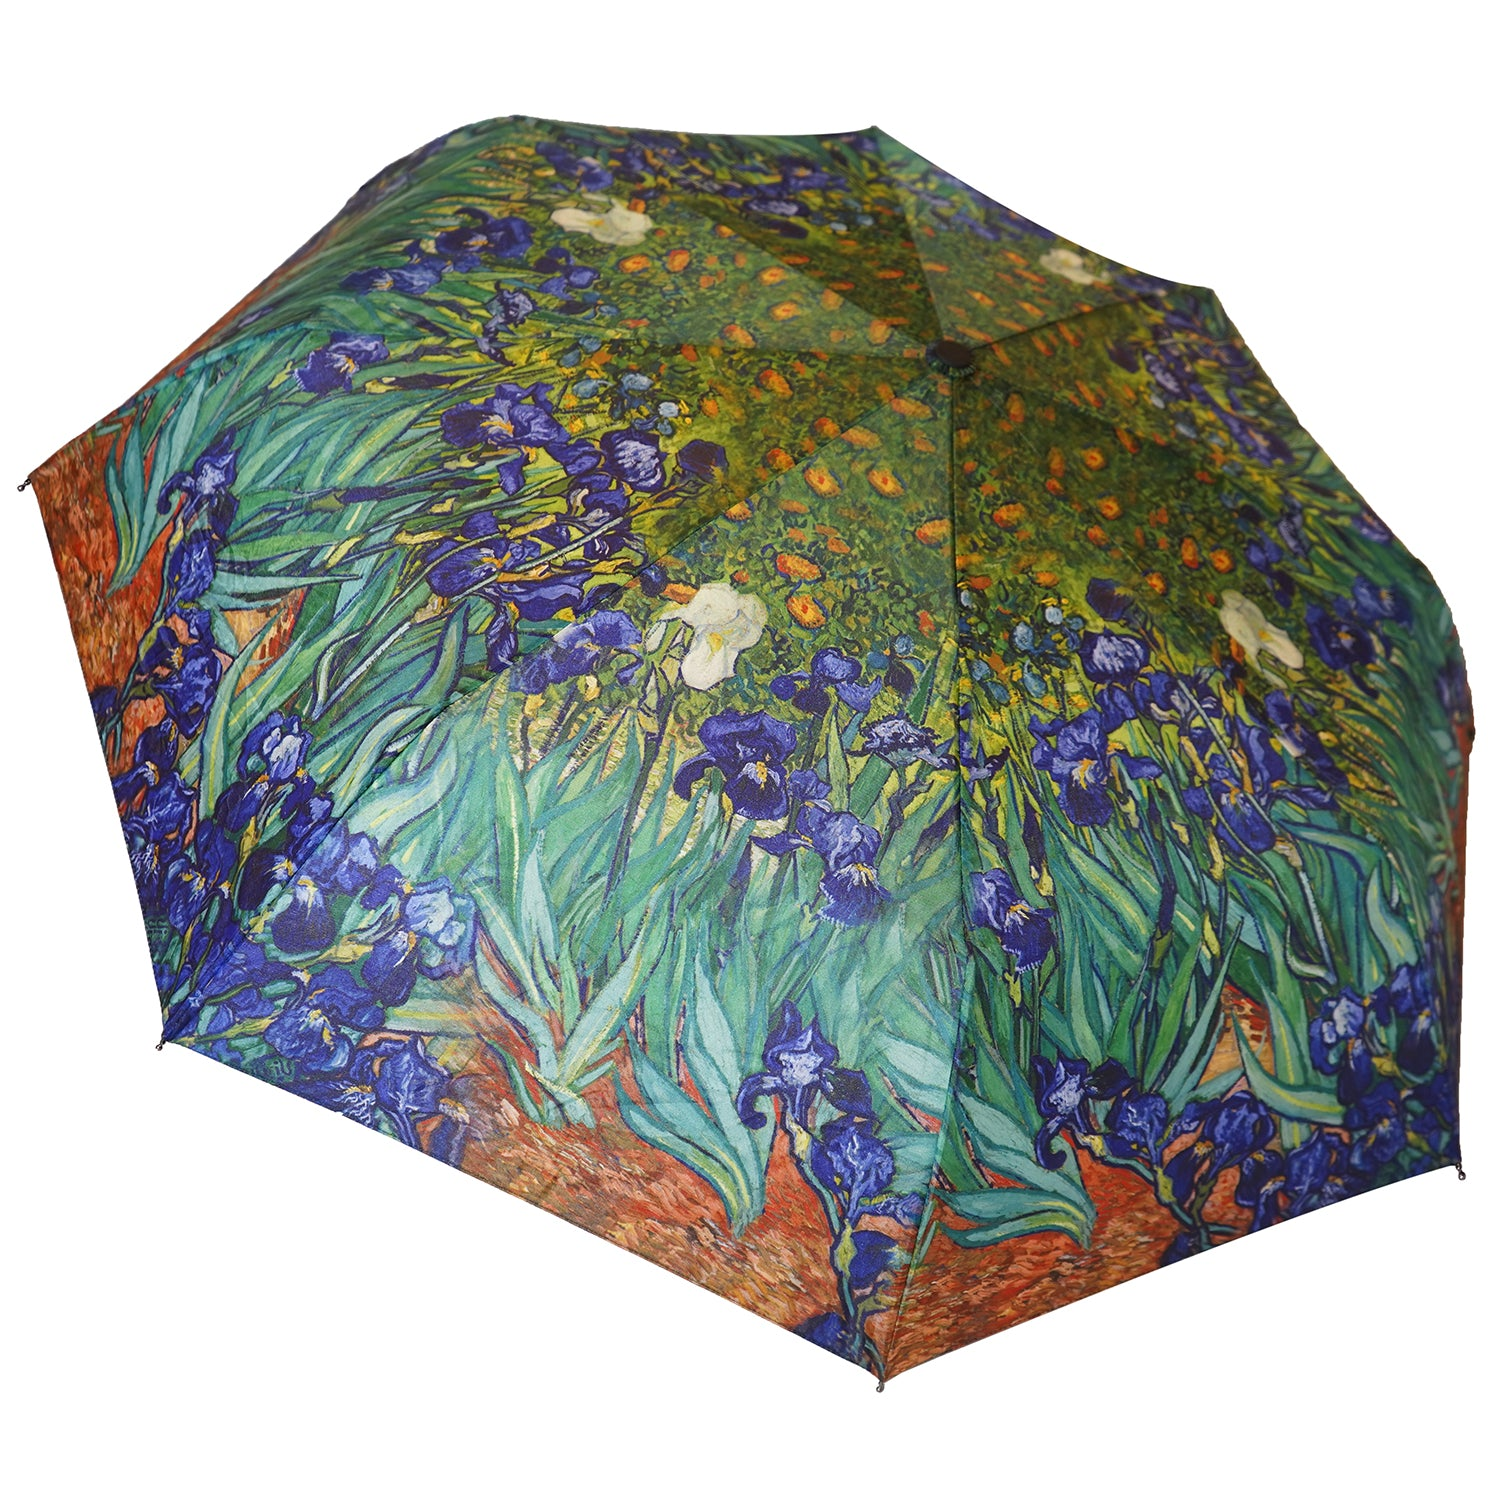 "Van Gogh Blue Irises 12"" Compact Collapsible Auto Open and Close Premium Umbrella"